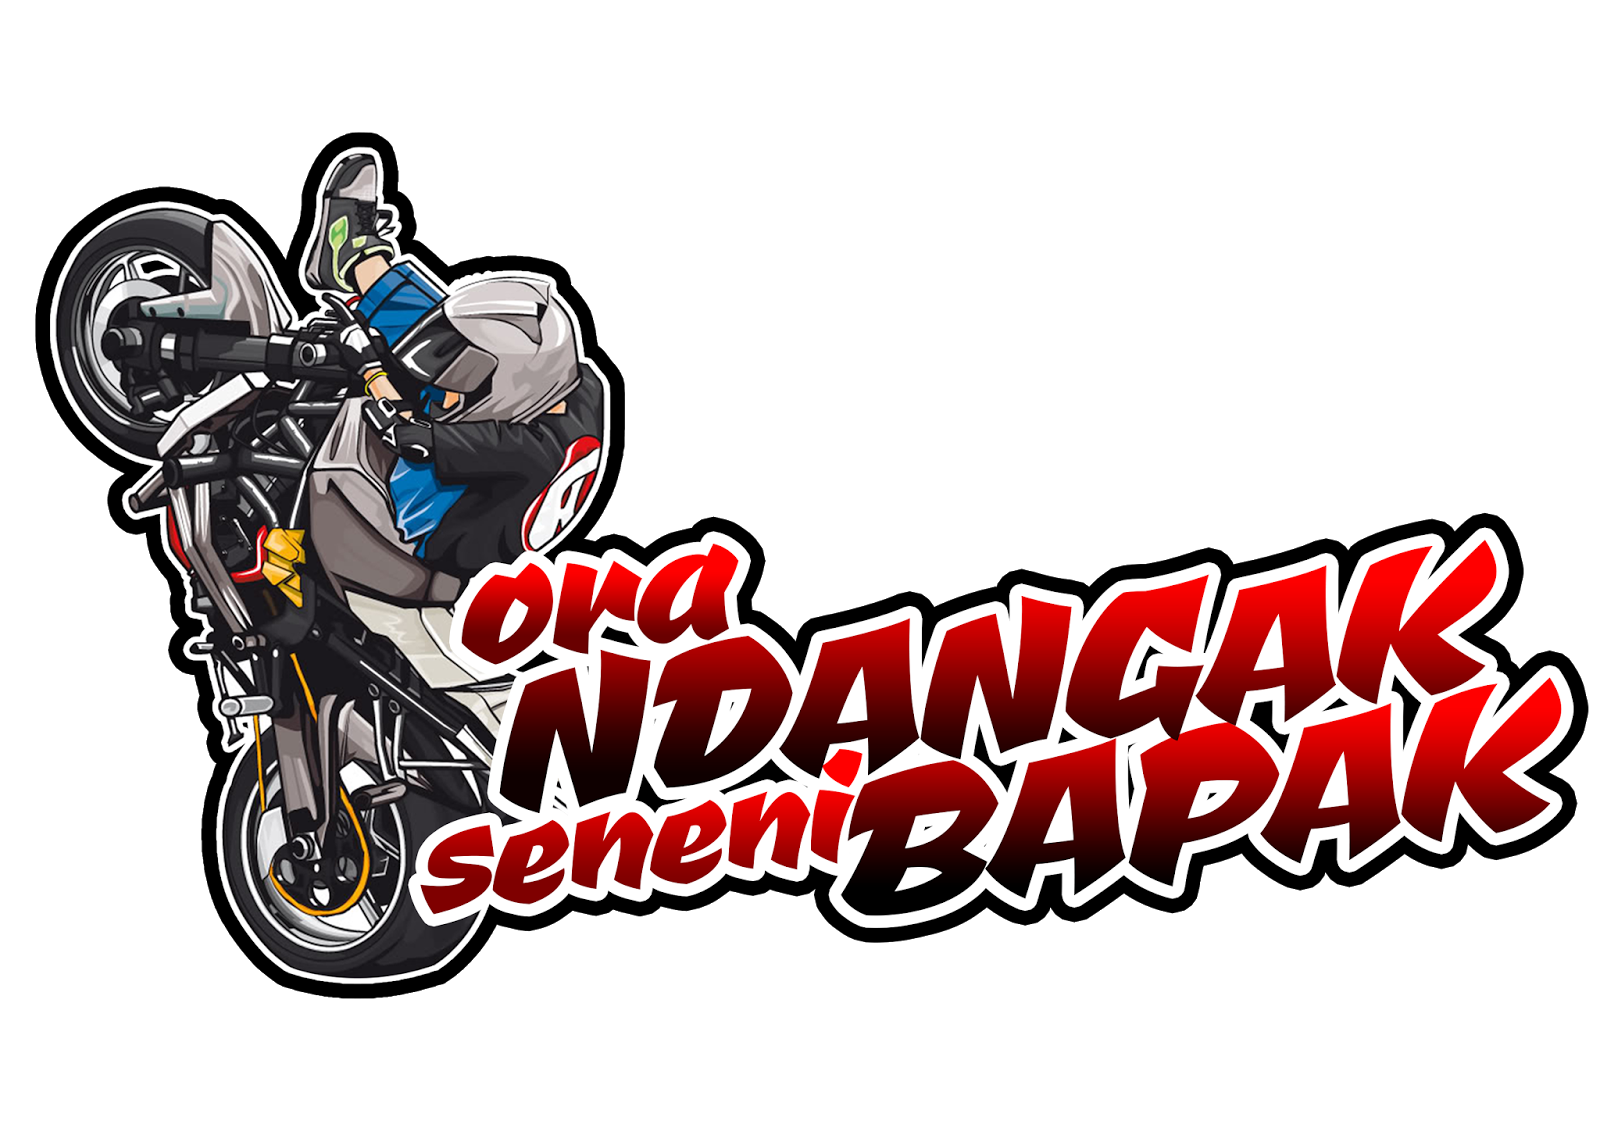 Download stiker racing mary rosh